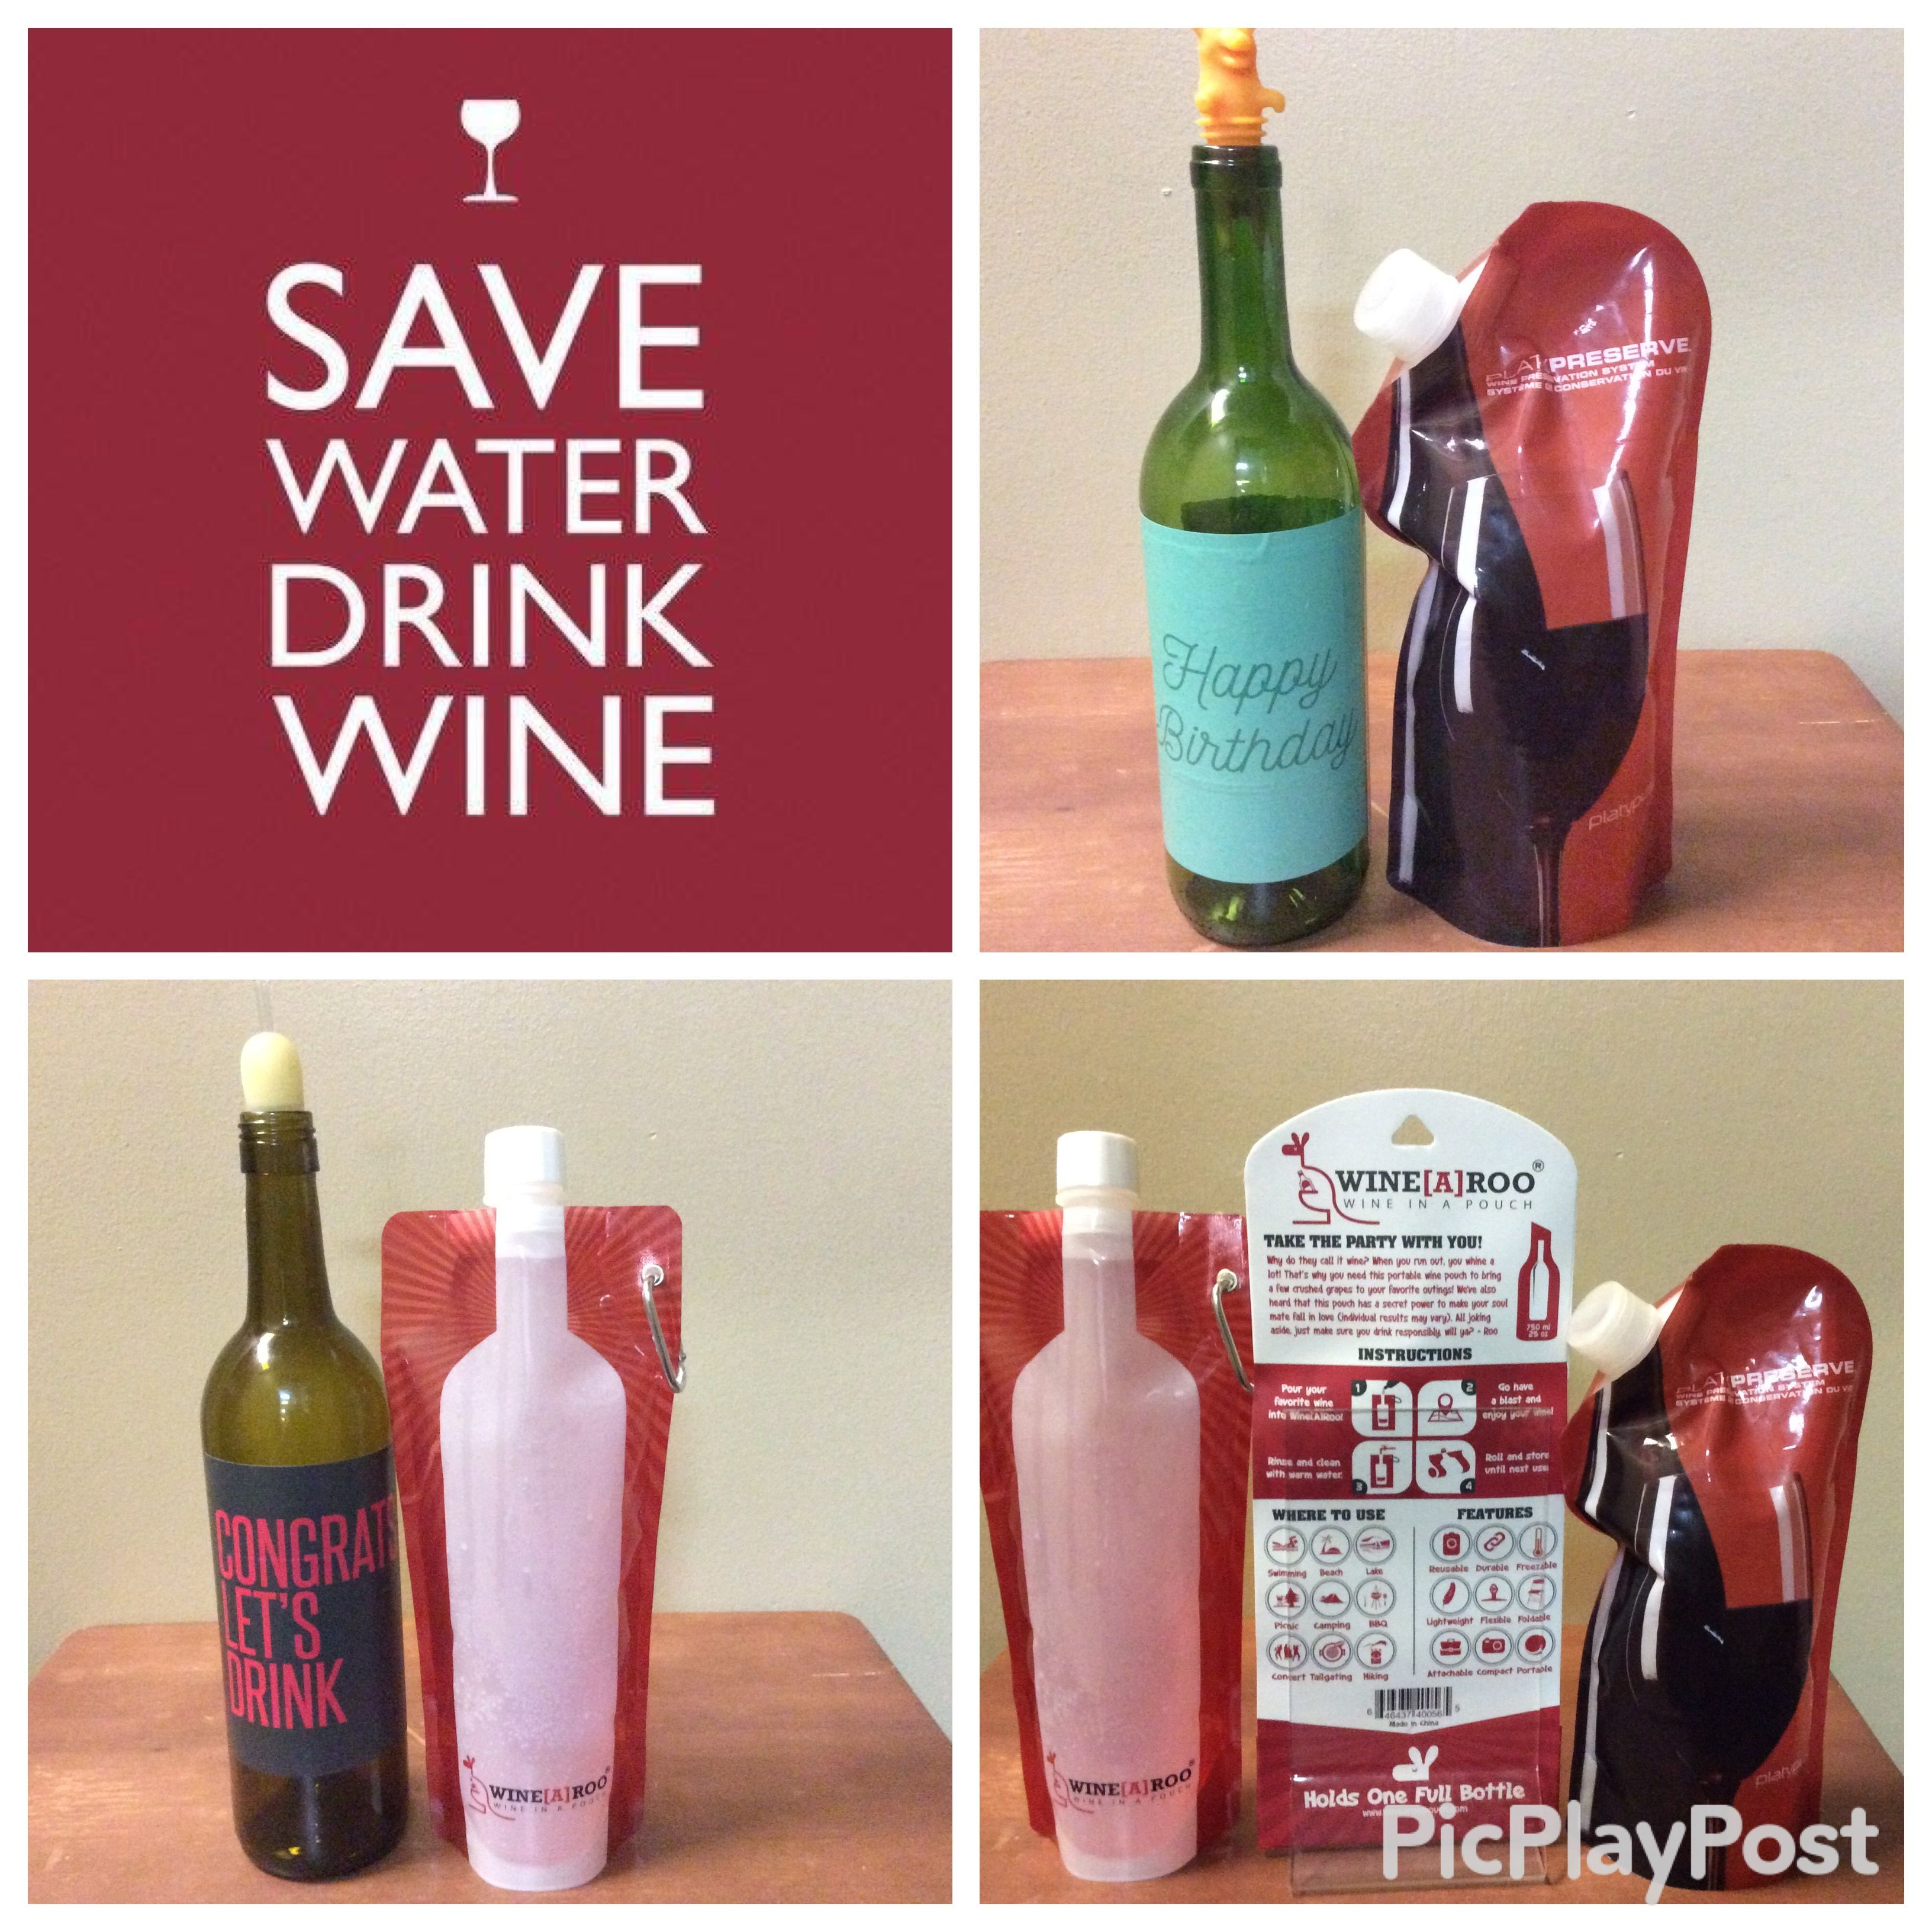 Pin By Danette S Urban Oasis On Gifts Duo Under 30 00 Happy Wine Birthday Wine Save Water Drink